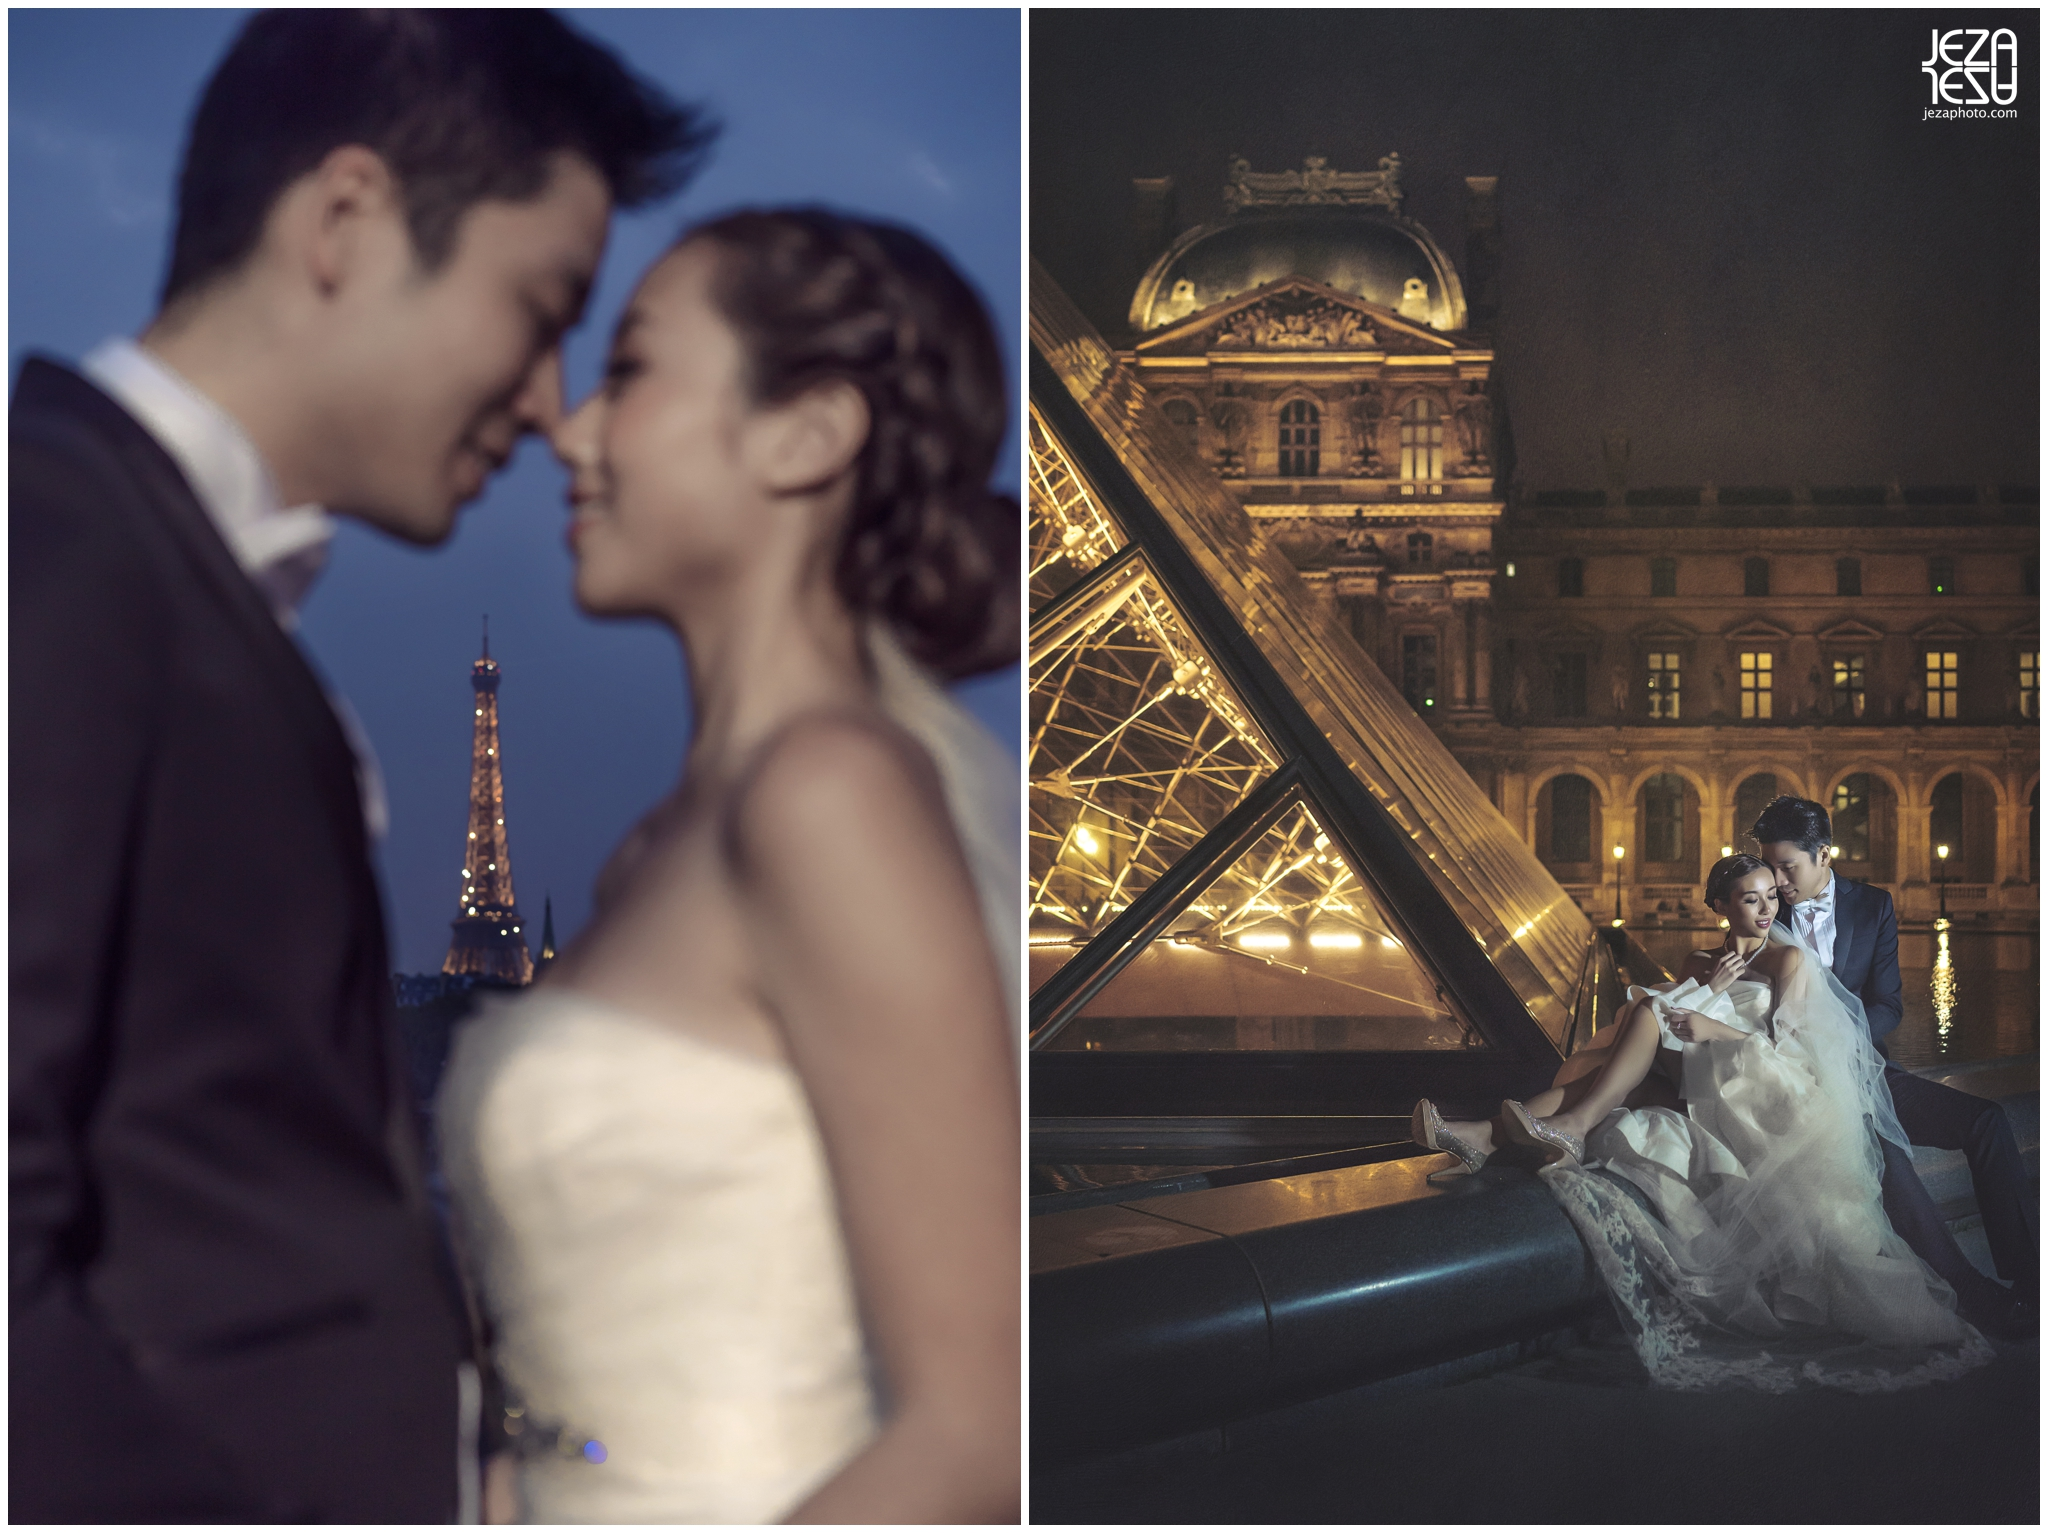 jeza Paris Pont Alexandre III louvre pre-wedding photo